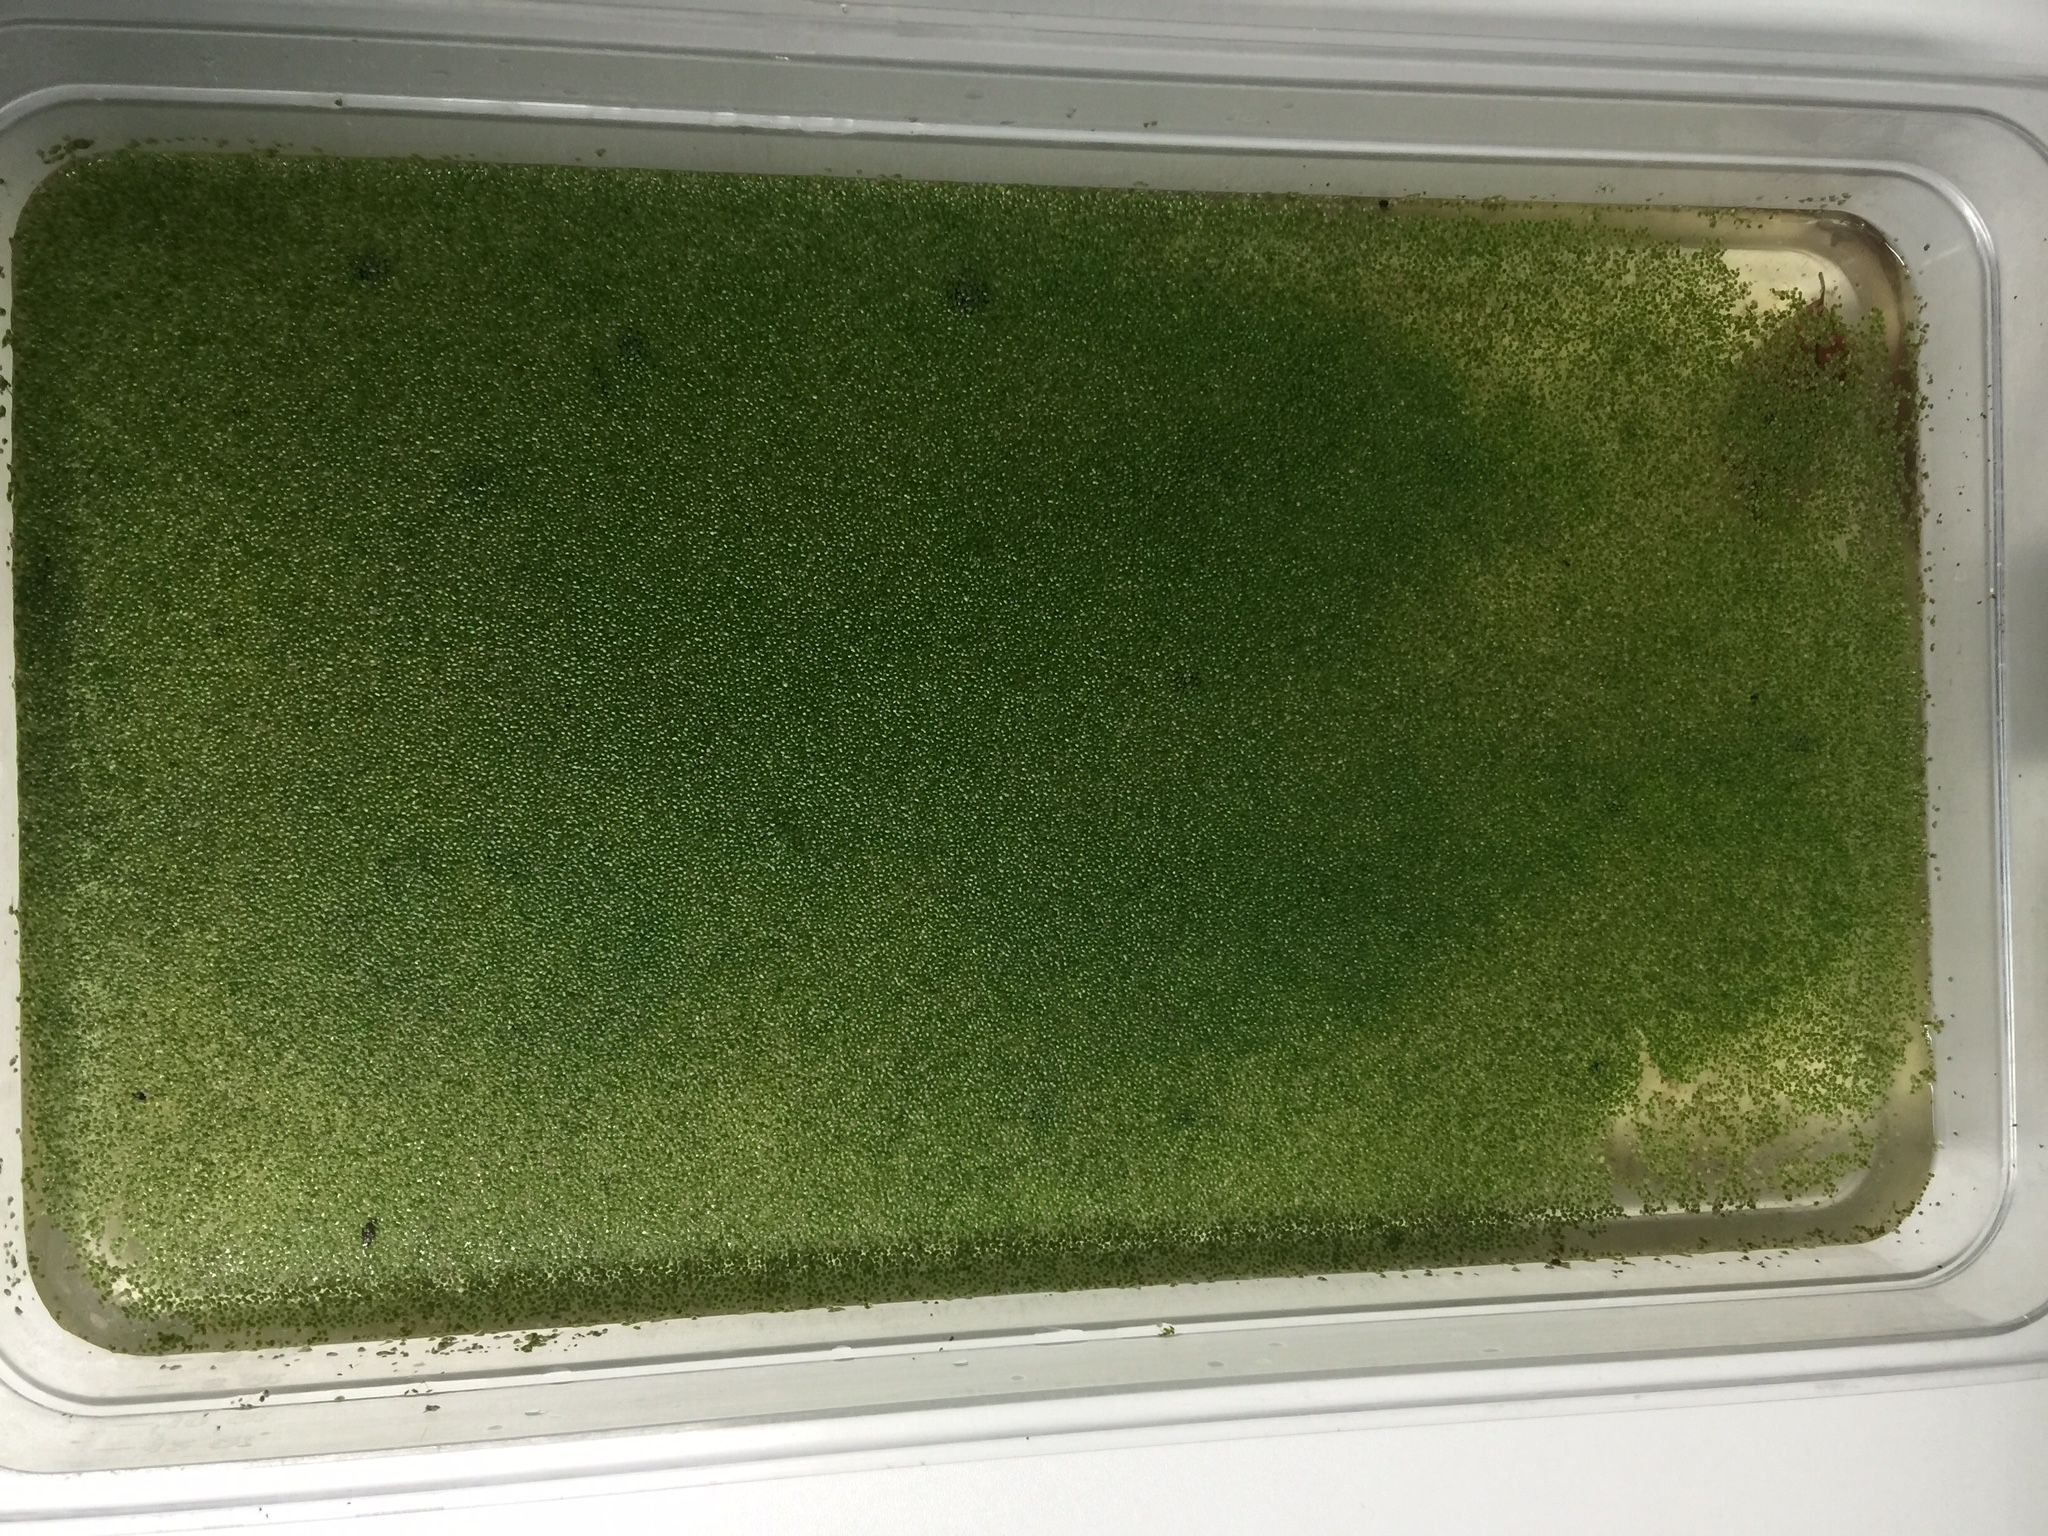 Duckweed: protein rich for animal feed, easy to grow, good to chickens, pigs, goats, ducks and cows.